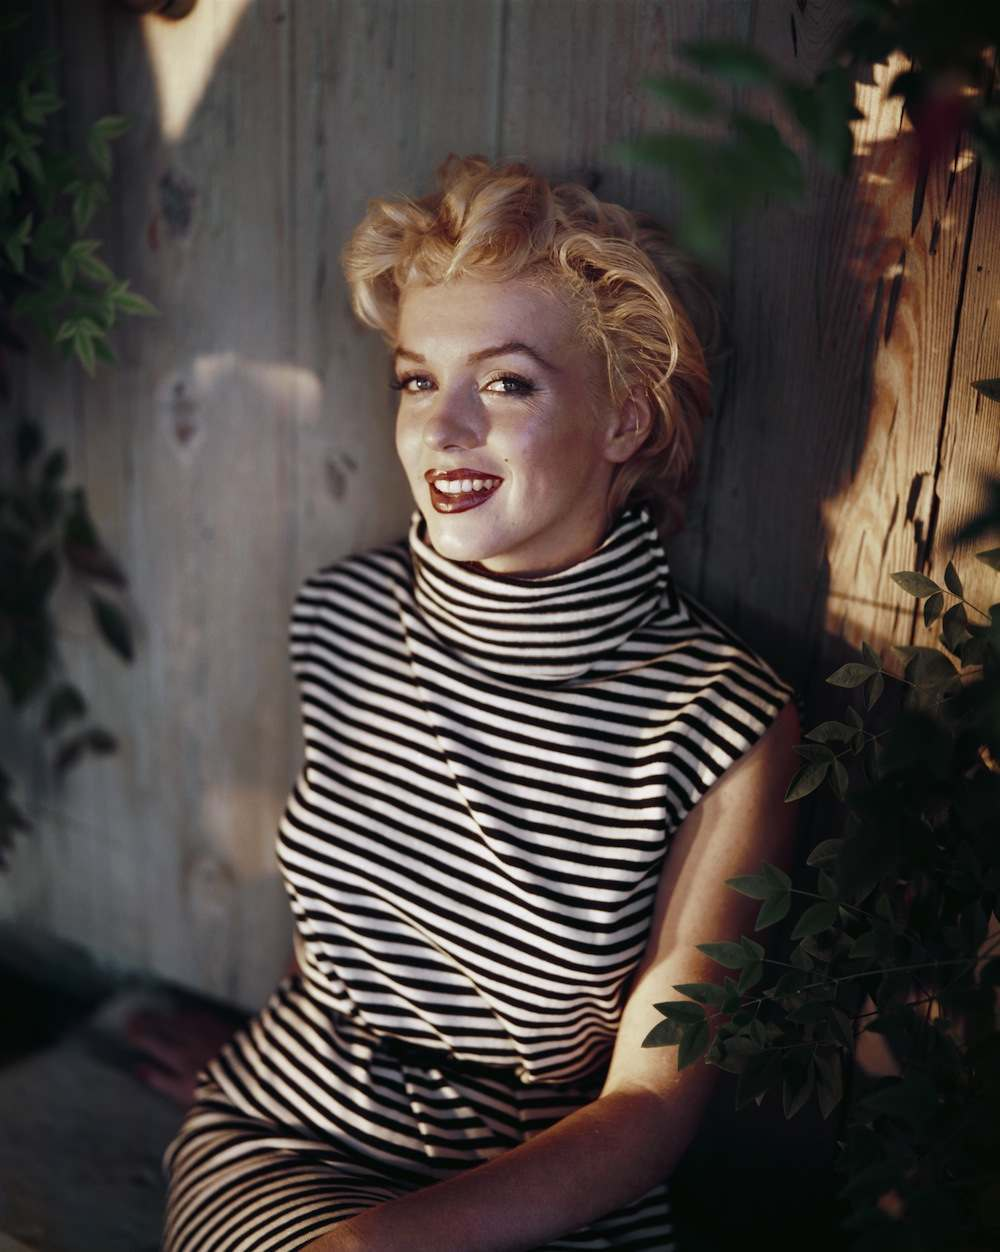 American actress Marilyn Monroe (Norma Jean Mortenson or Norma Jean Baker, 1926 - 1962).   (Photo by Baron/Getty Images)